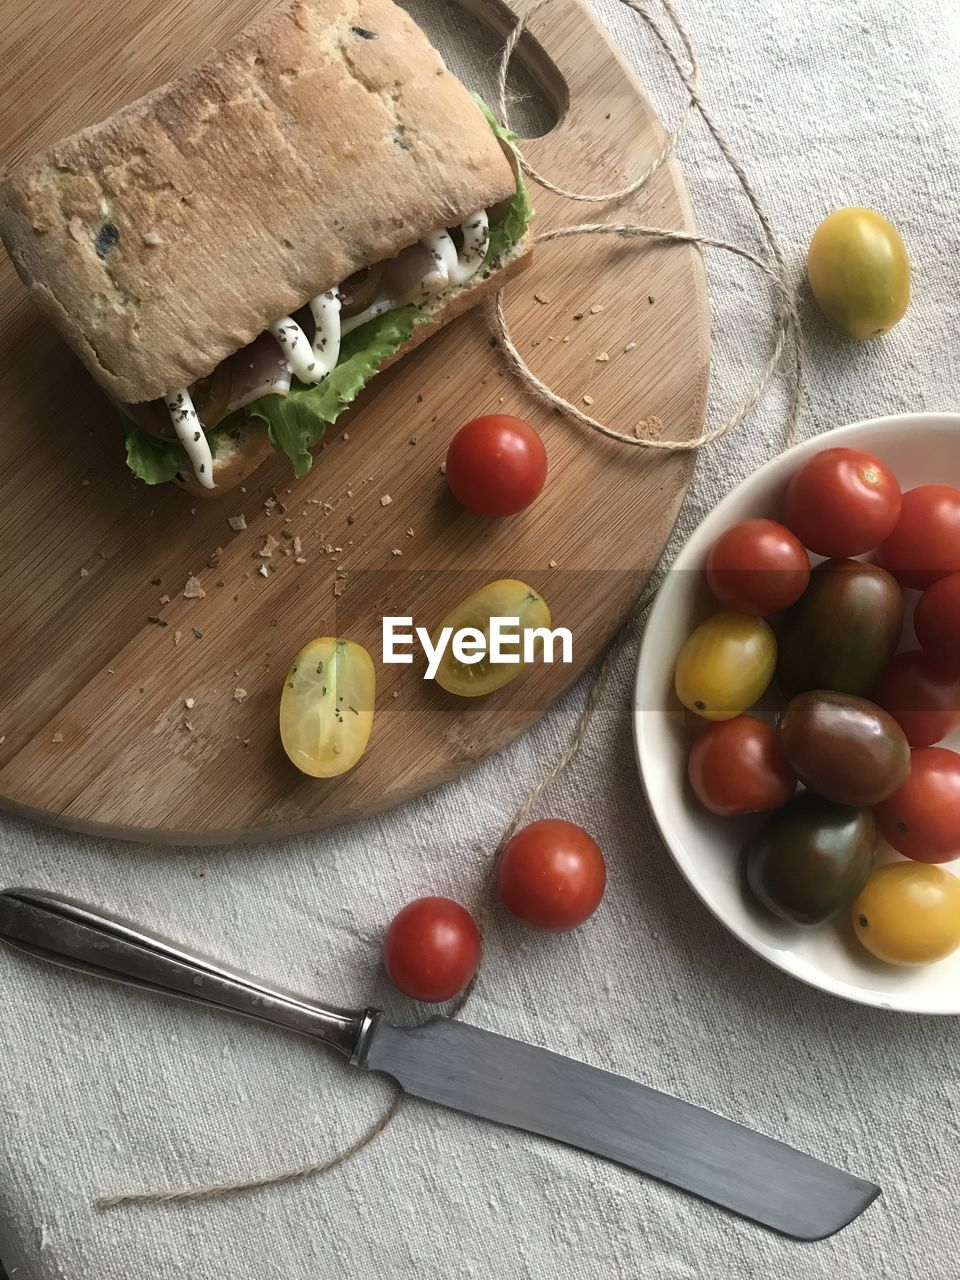 food, food and drink, healthy eating, fruit, tomato, freshness, table, still life, indoors, vegetable, wellbeing, high angle view, bread, knife, wood - material, eating utensil, olive, no people, cutting board, cherry tomato, table knife